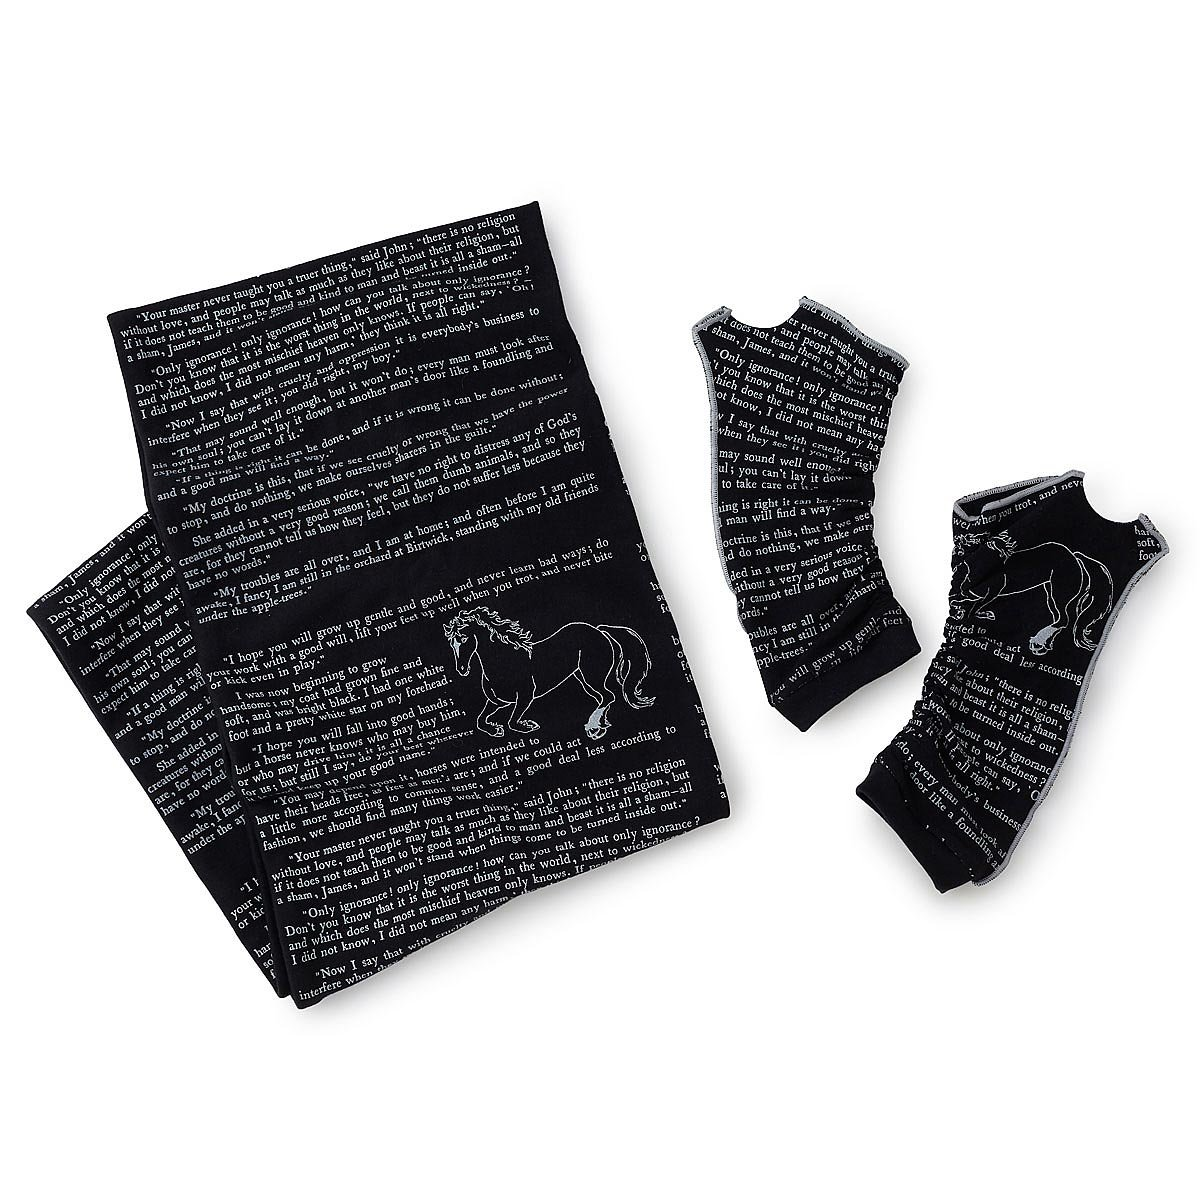 black beauty literary scarf and writing gloves long gloves black beauty literary scarf and writing gloves 3 thumbnail